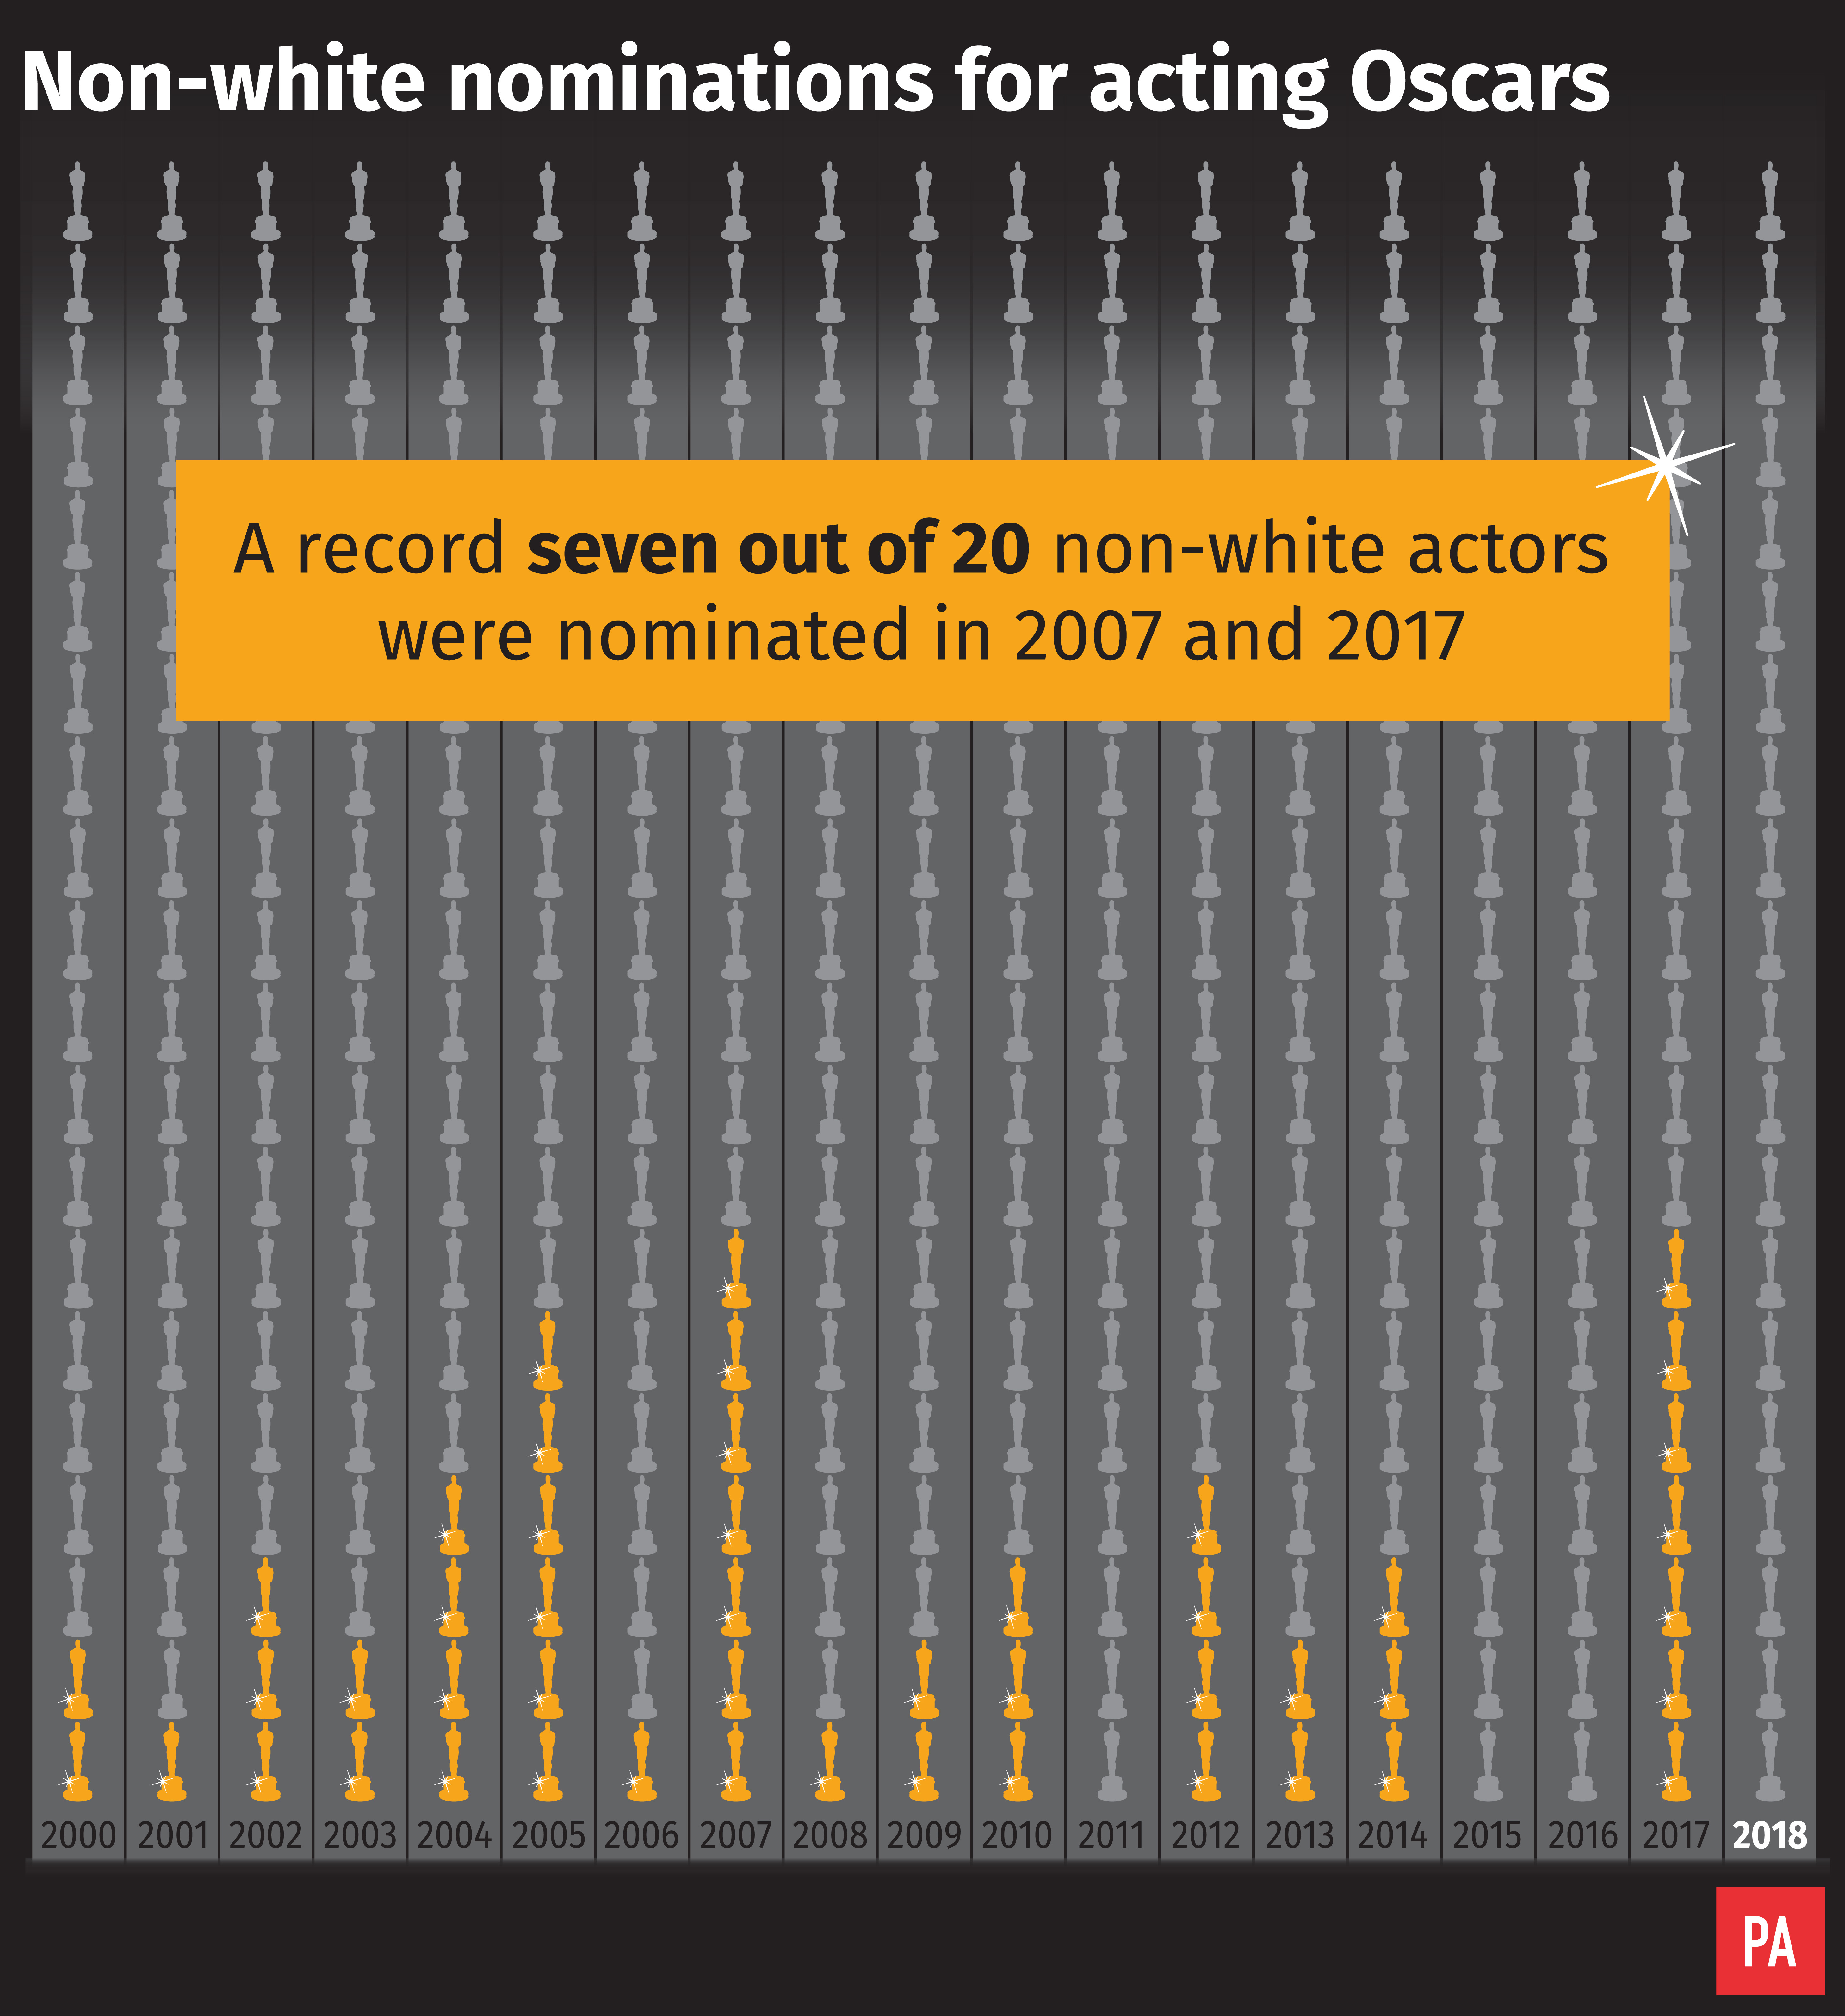 Non-white nominations for acting Oscars